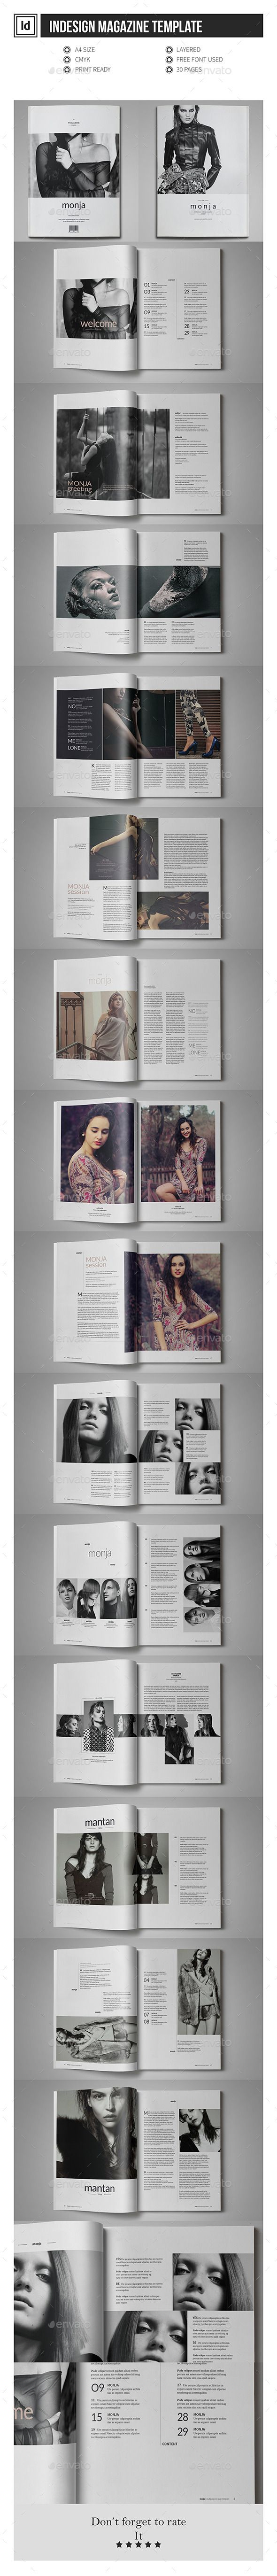 Multipurpose InDesign Magazine Template — InDesign INDD #elegant #a4 • Available here → https://graphicriver.net/item/multipurpose-indesign-magazine-template/12046872?ref=pxcr